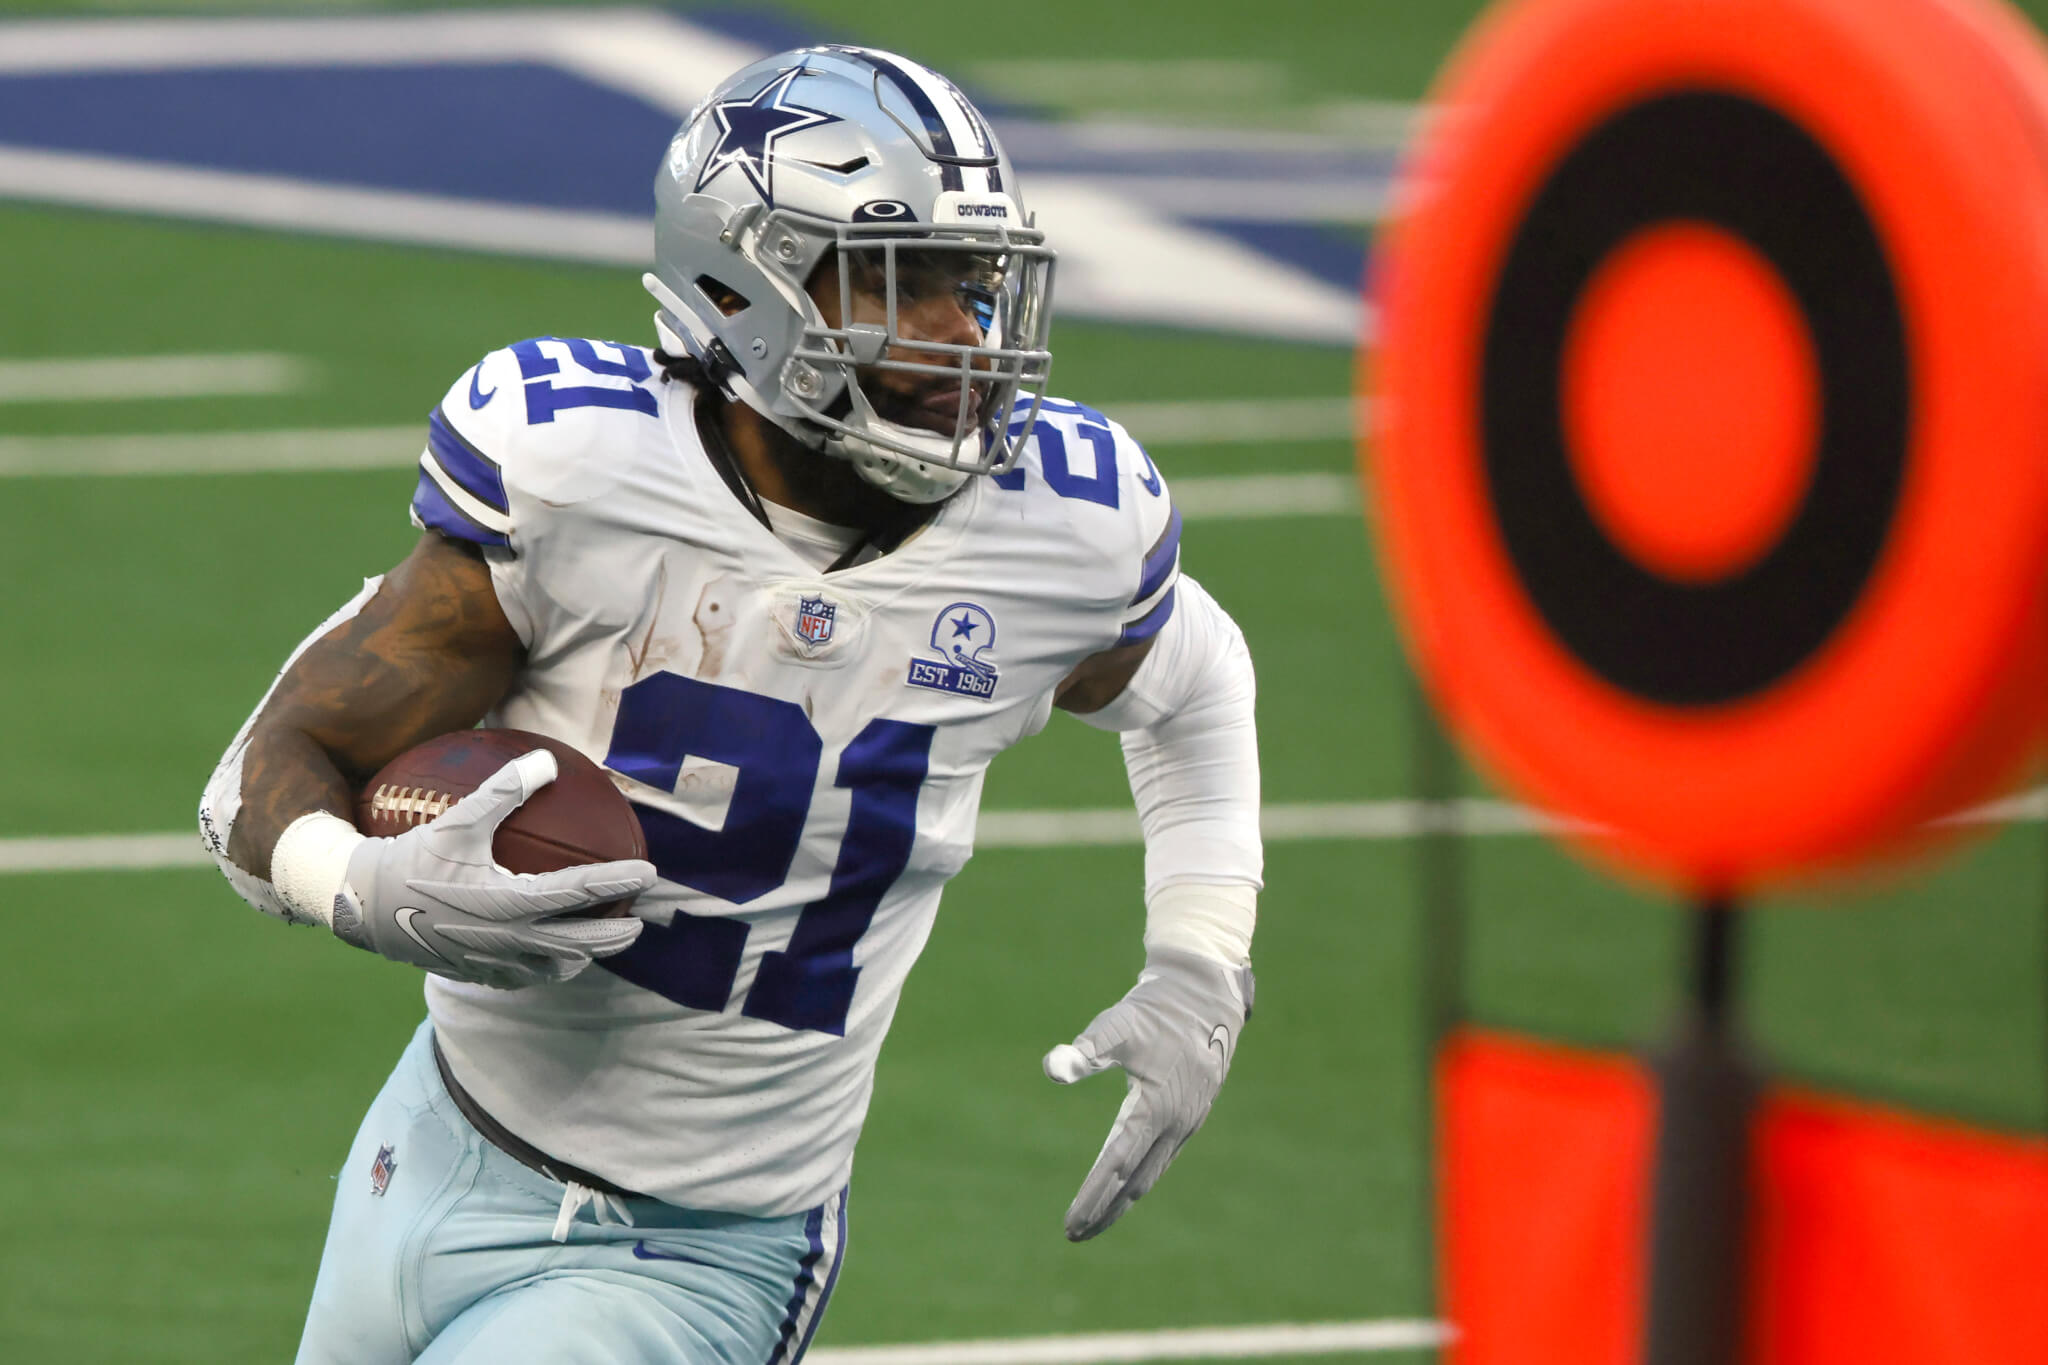 Giants cowboys line betting explained cryptocurrency list values in life